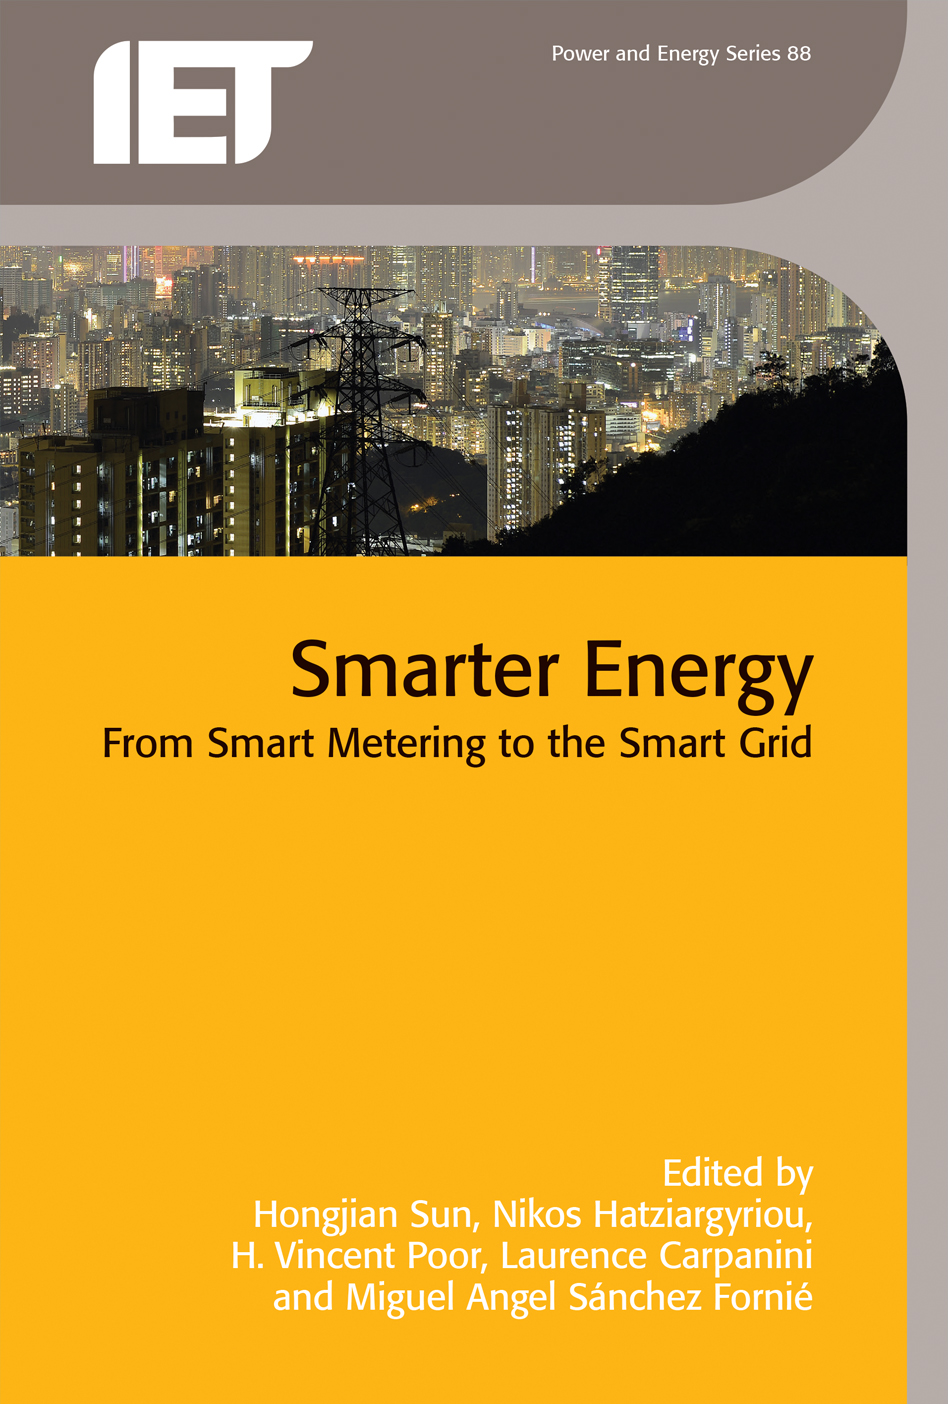 Smarter Energy, From smart metering to the smart grid